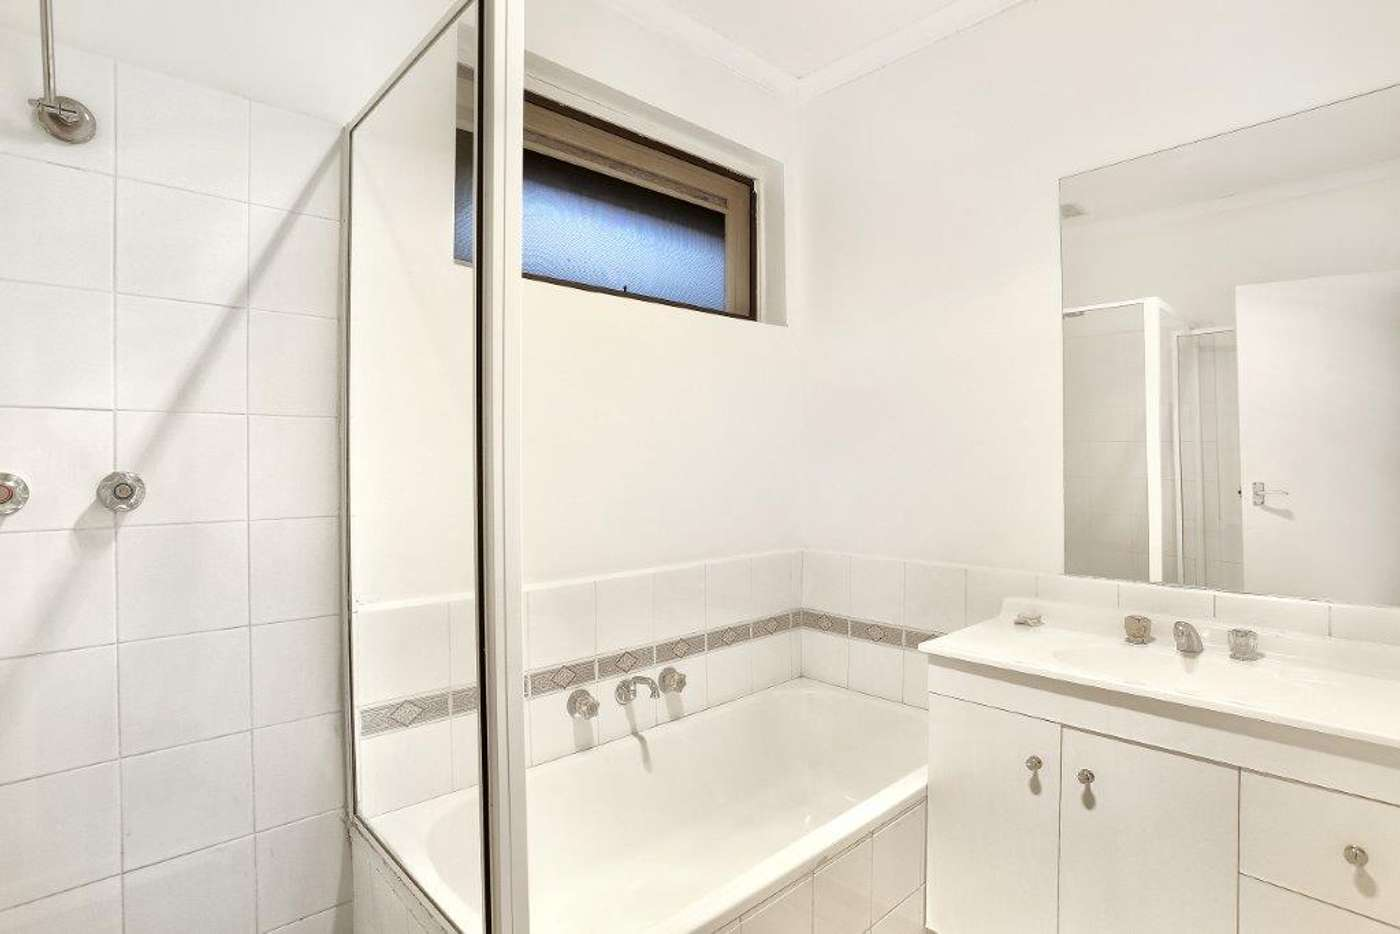 Seventh view of Homely townhouse listing, 7/39 Kennedy Street, Glenroy VIC 3046